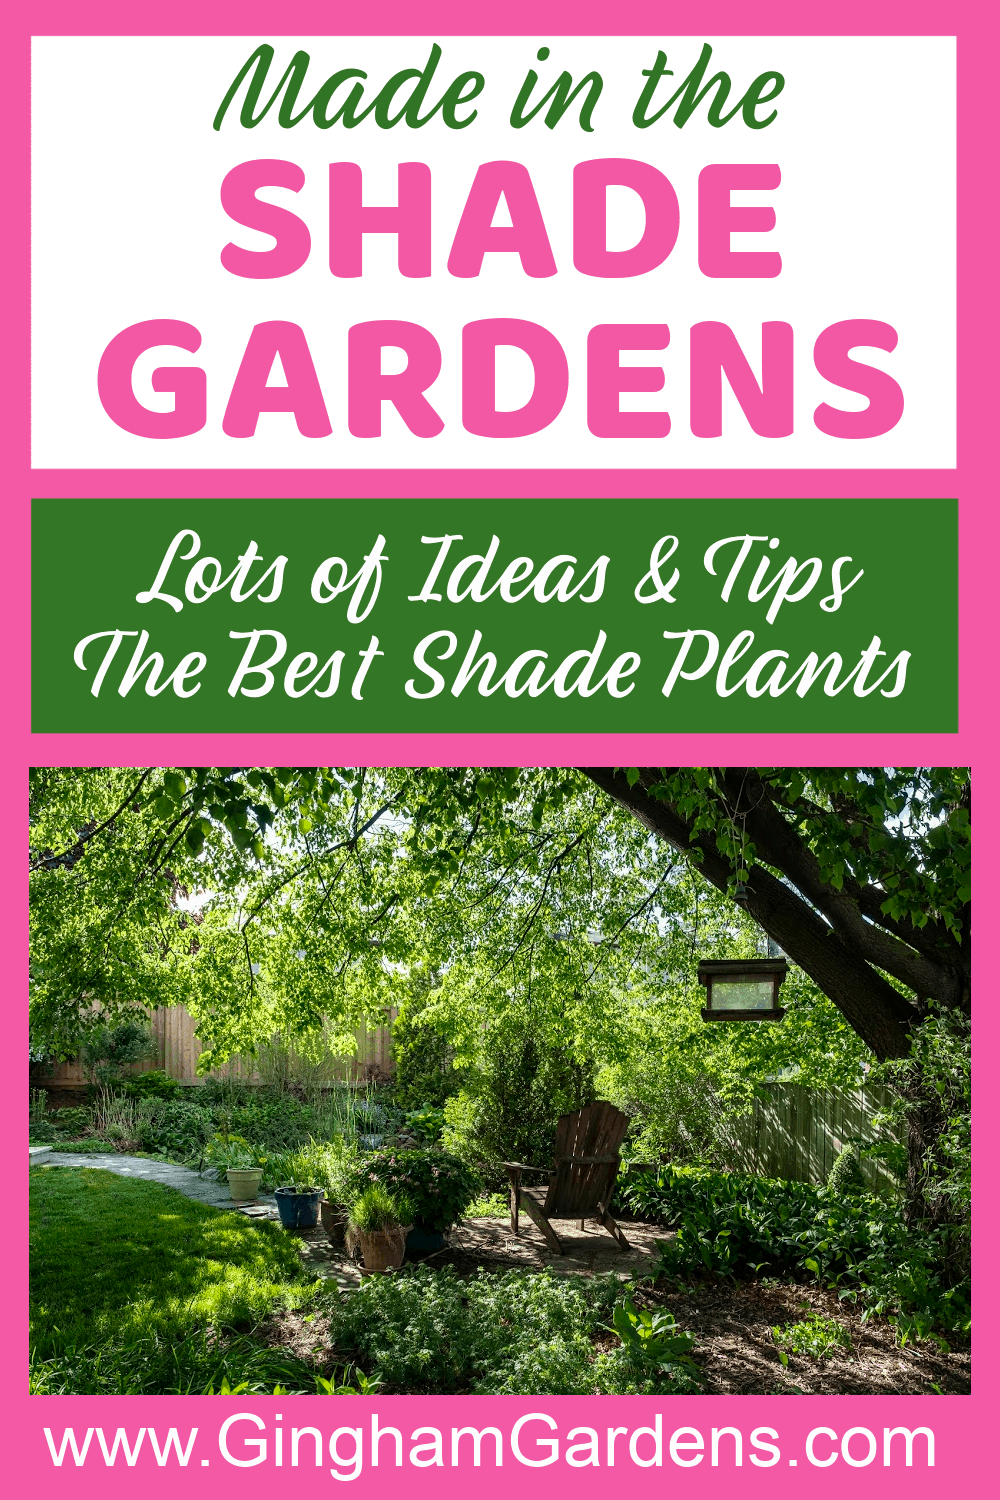 Image of a Shade Garden with Text Overlay - Made in the Shade Gardens